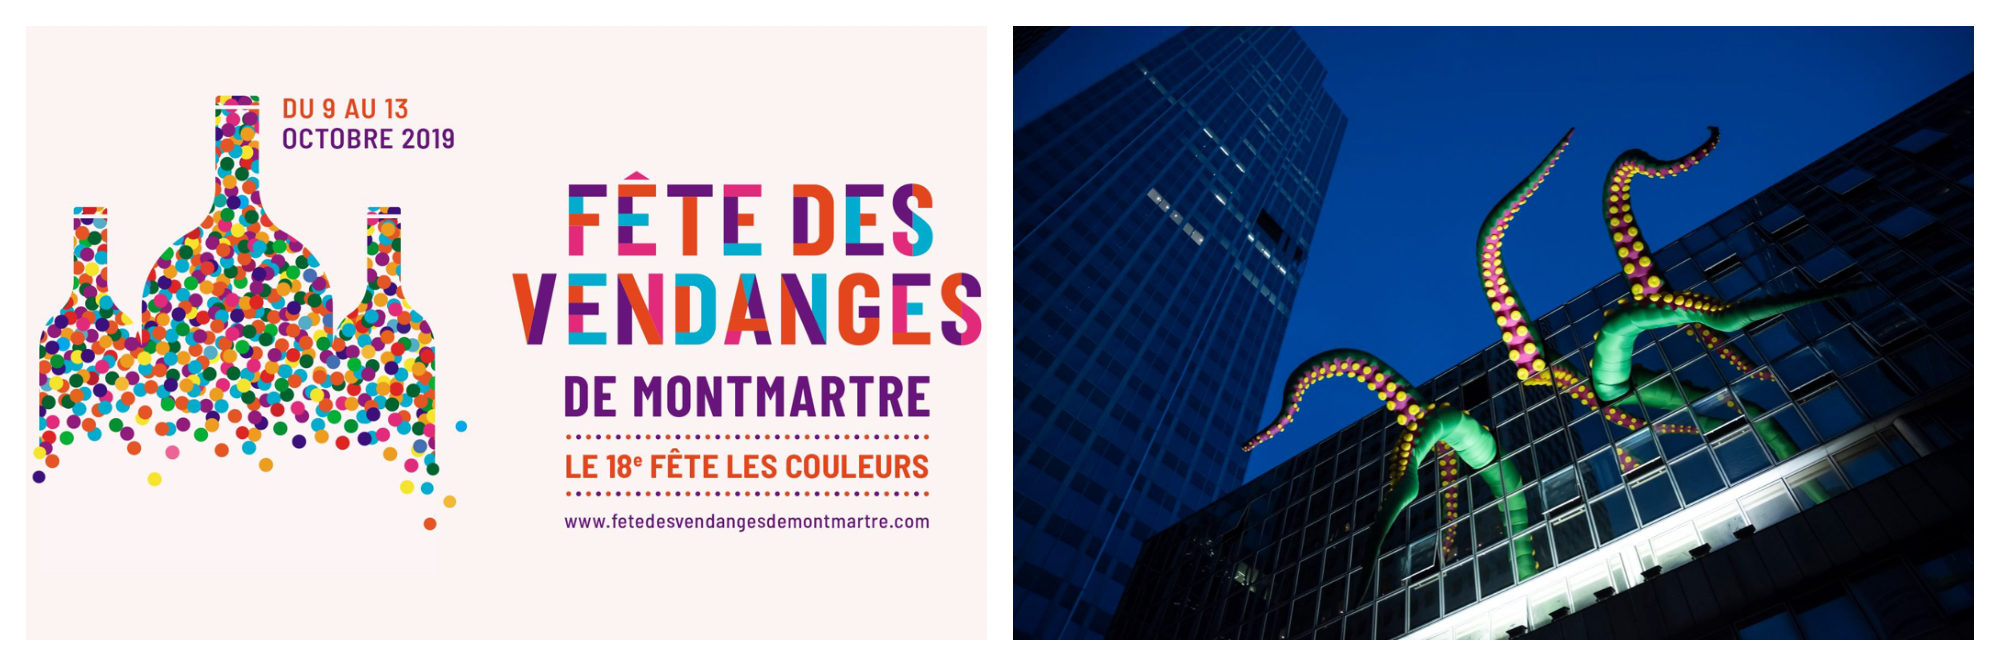 A poster for the Fete des Vendanges (grape harvest) in Montmartre (left). Green tentacles peeking out of a building during Paris's Nuit Blanche art festival (right).